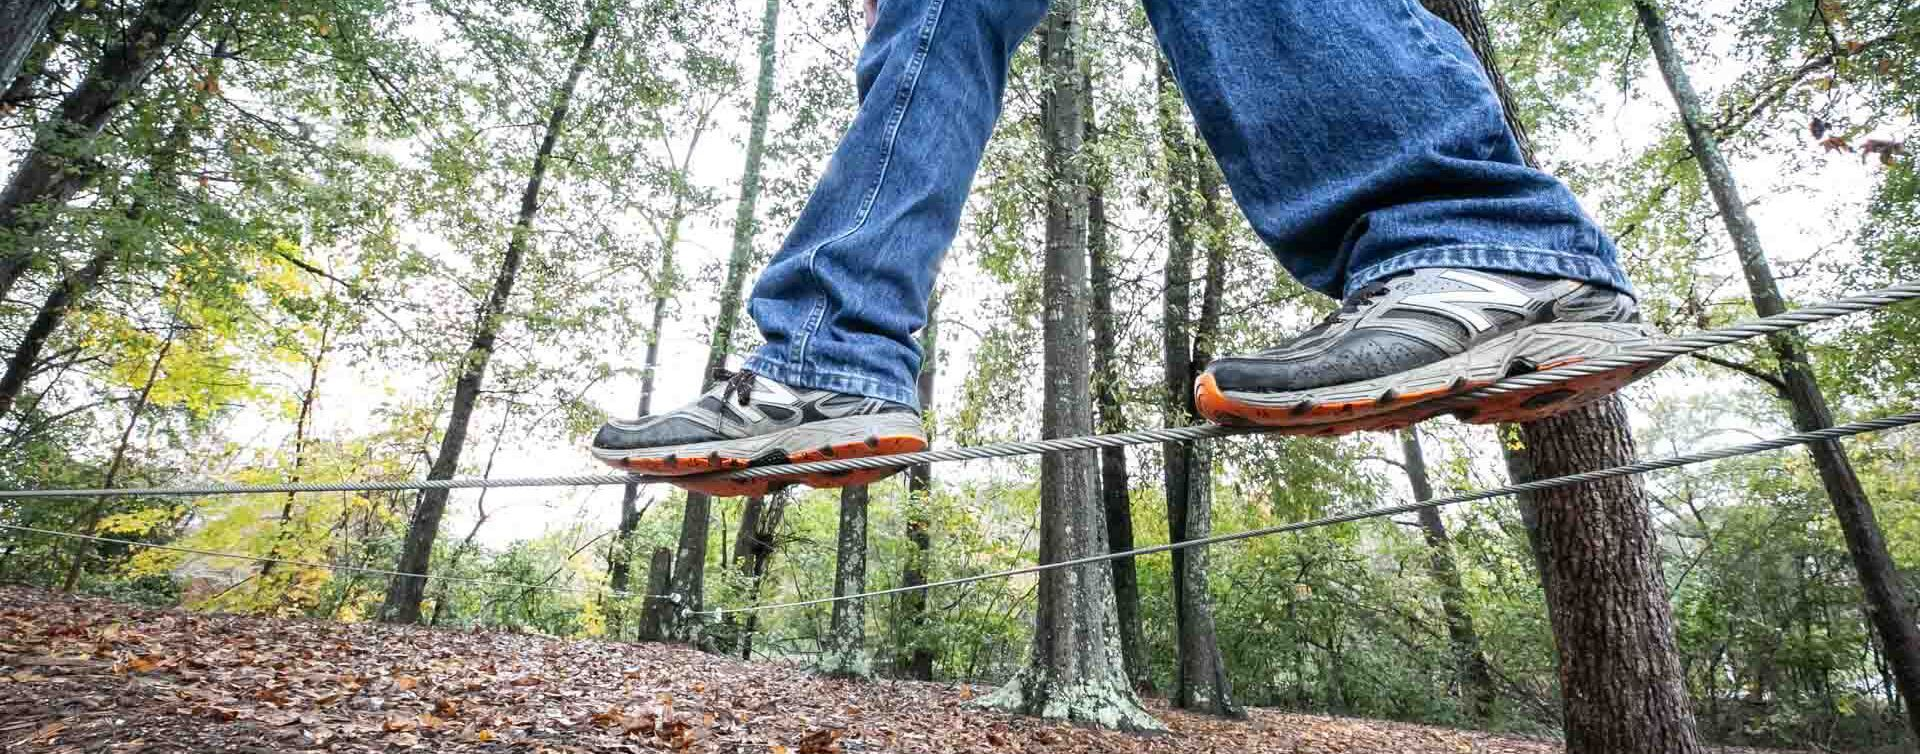 Pair of legs walking on a rope at the YMCA outdoor activities